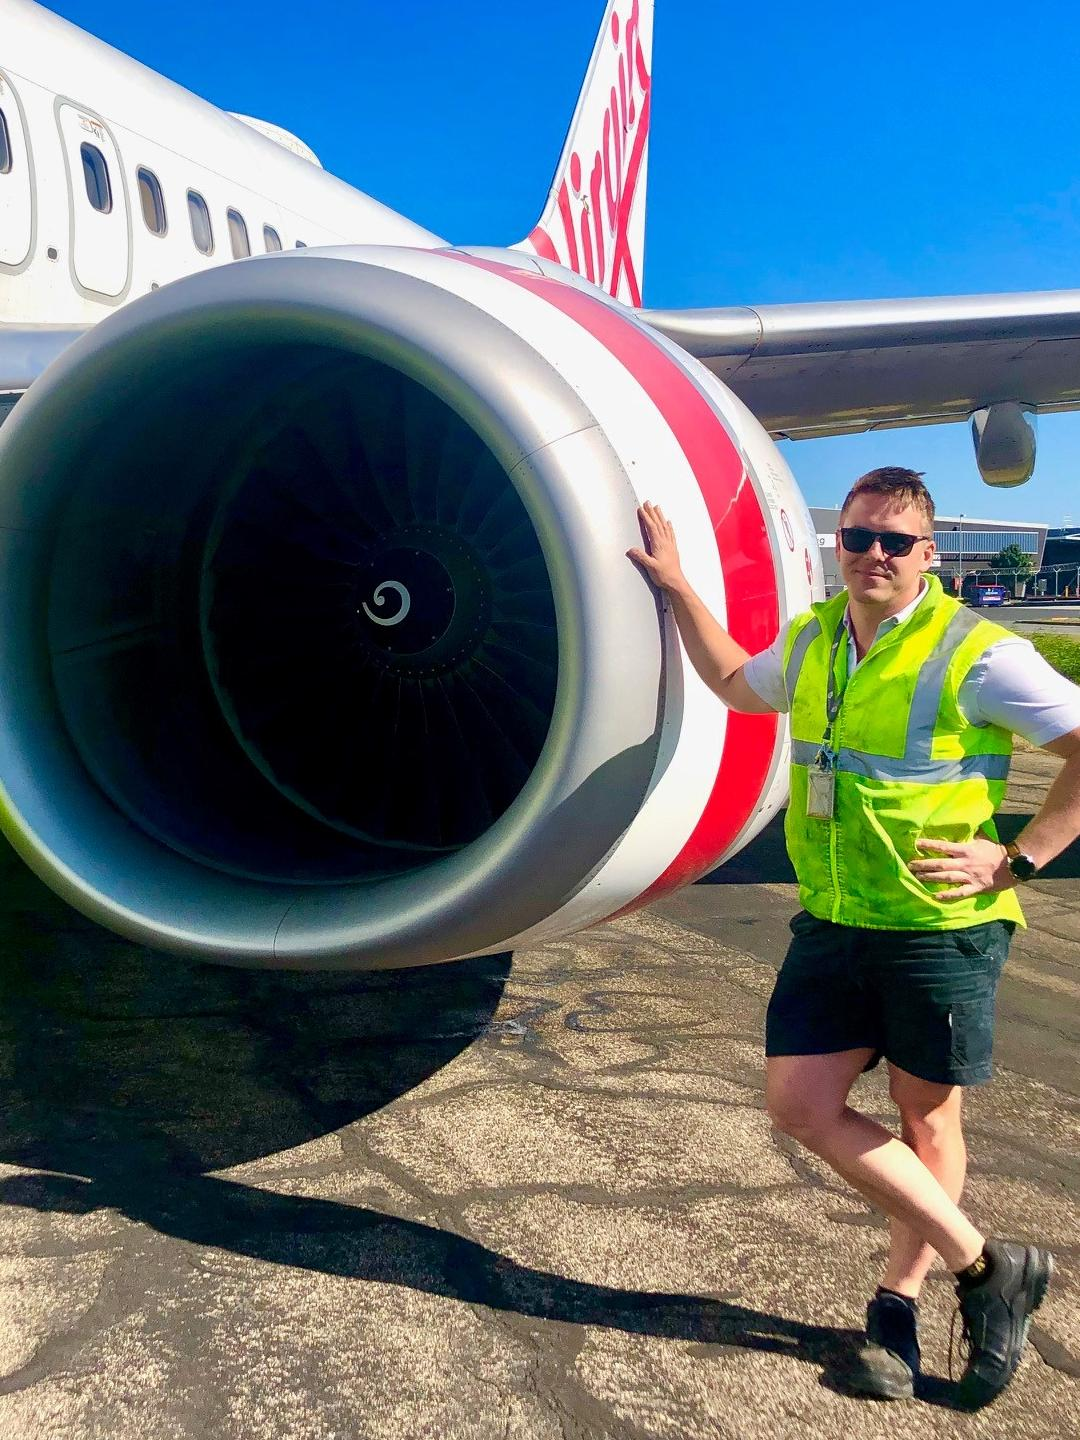 Virgin Australia is 'waking up' its planes as domestic flights pick up. Picture: Virgin AustraliaVirgin Australia is 'waking up' its planes as domestic flights pick up. Picture: Virgin Australia